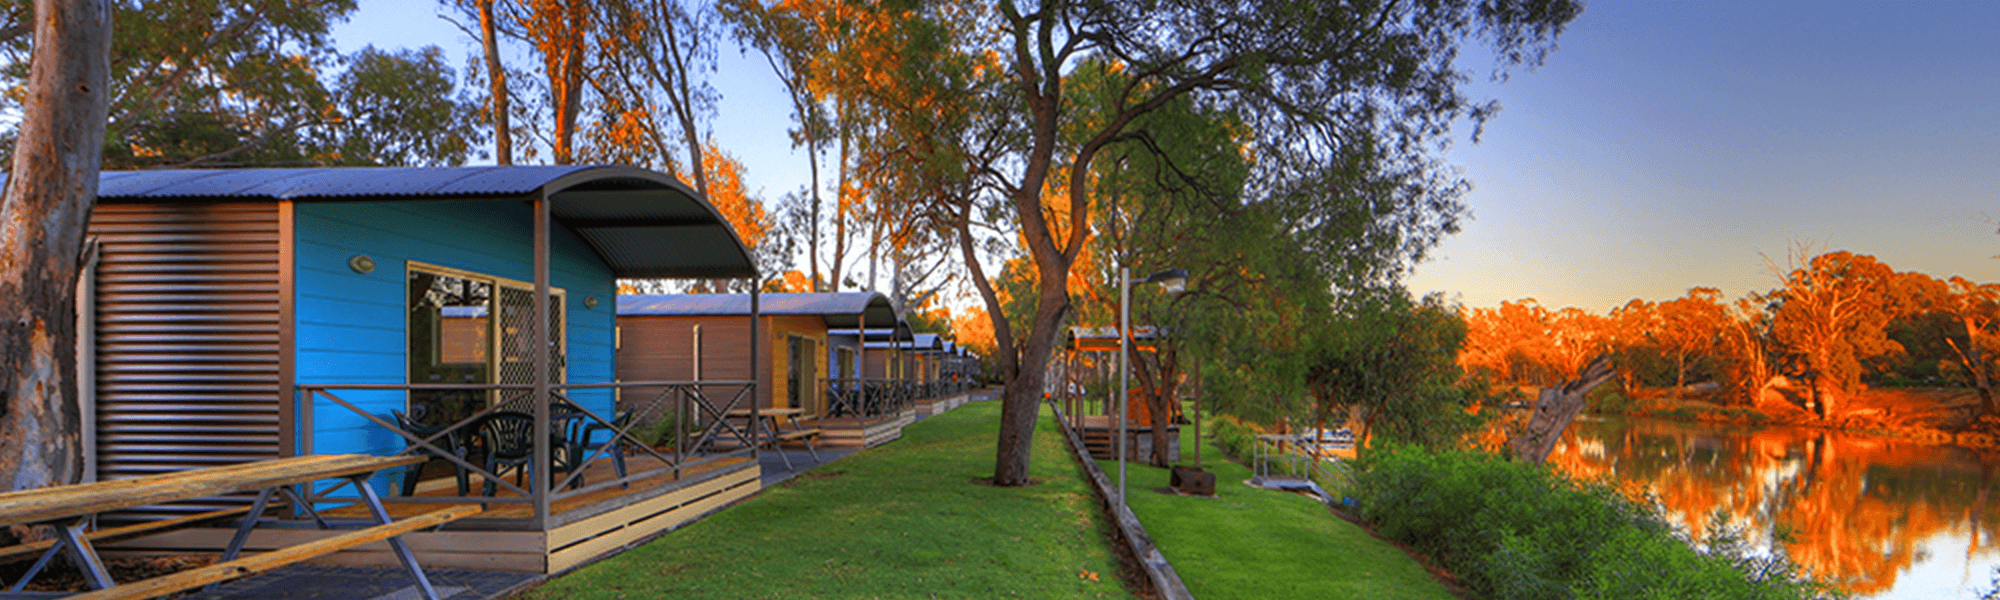 Caravan parks and movable dwellings